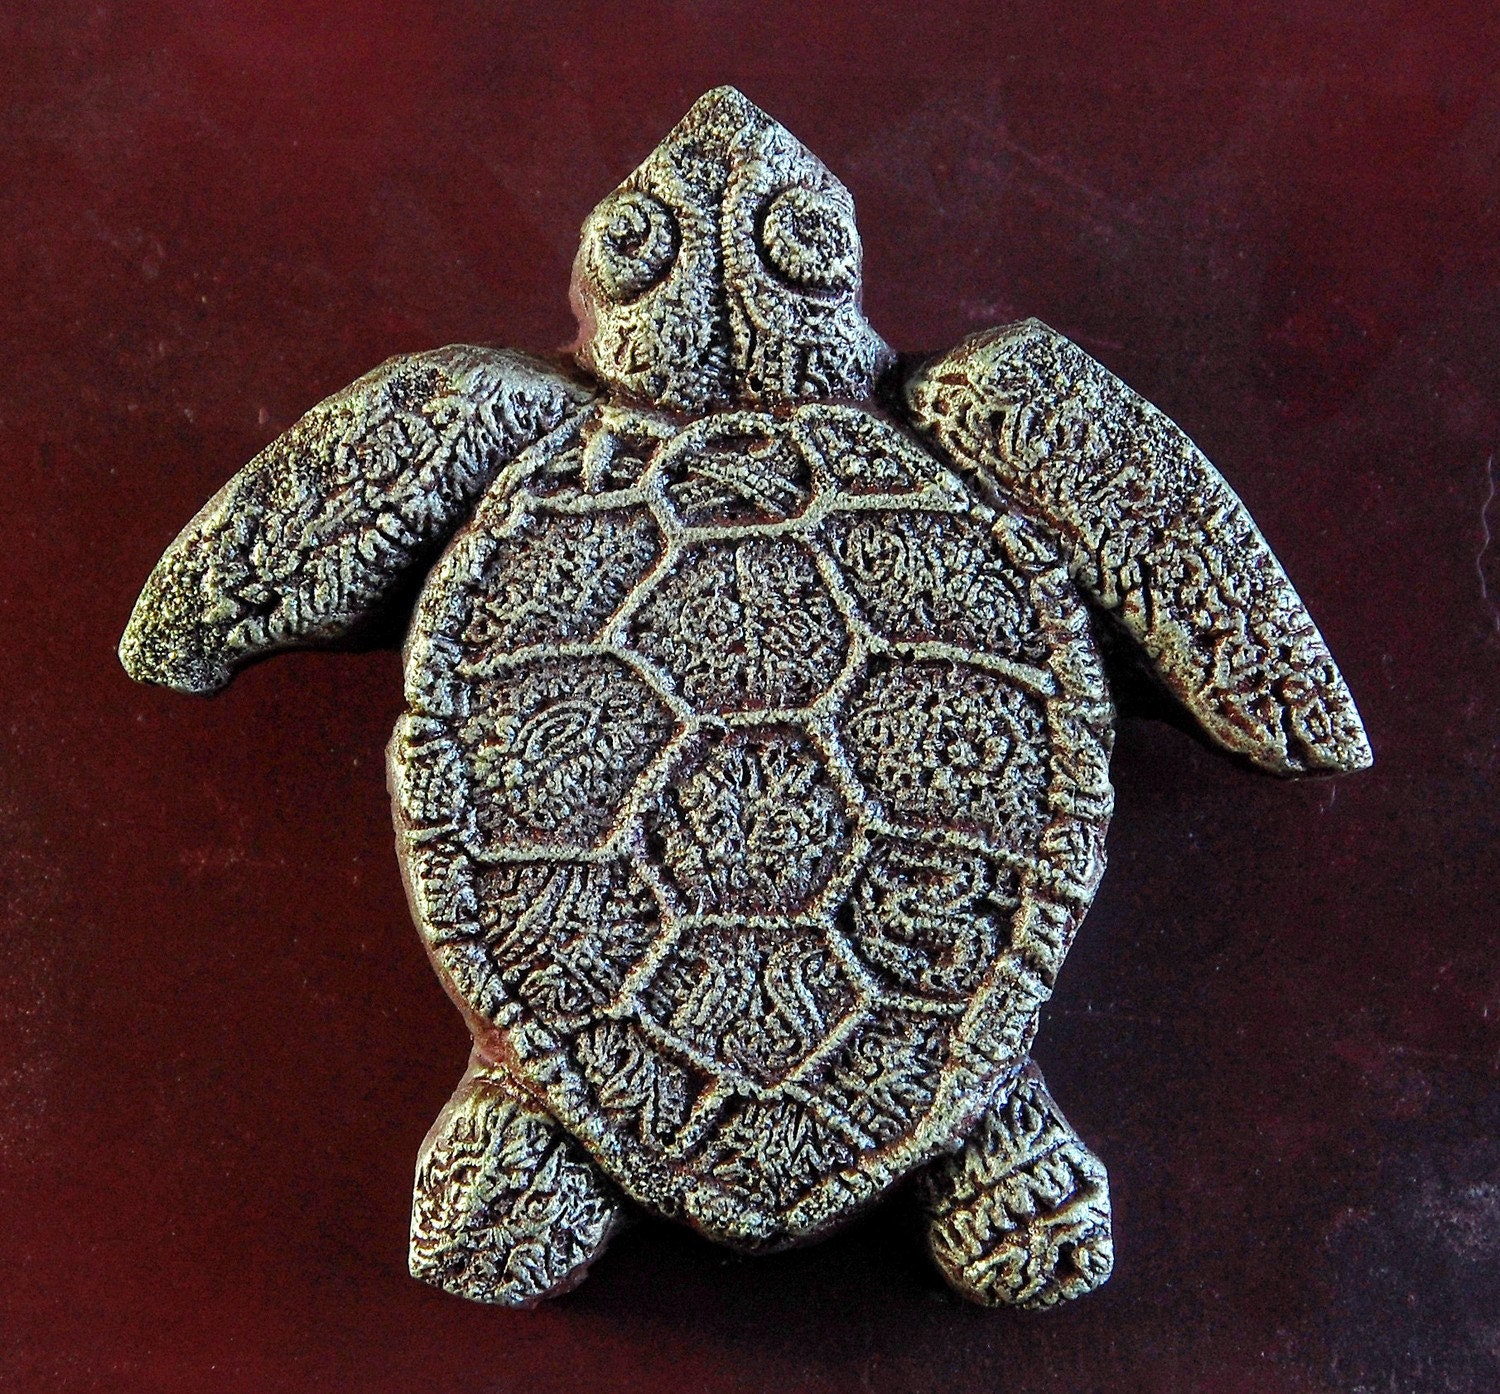 Turtle stone art wall plaque miniature sculpture sea turtle for Stone wall art